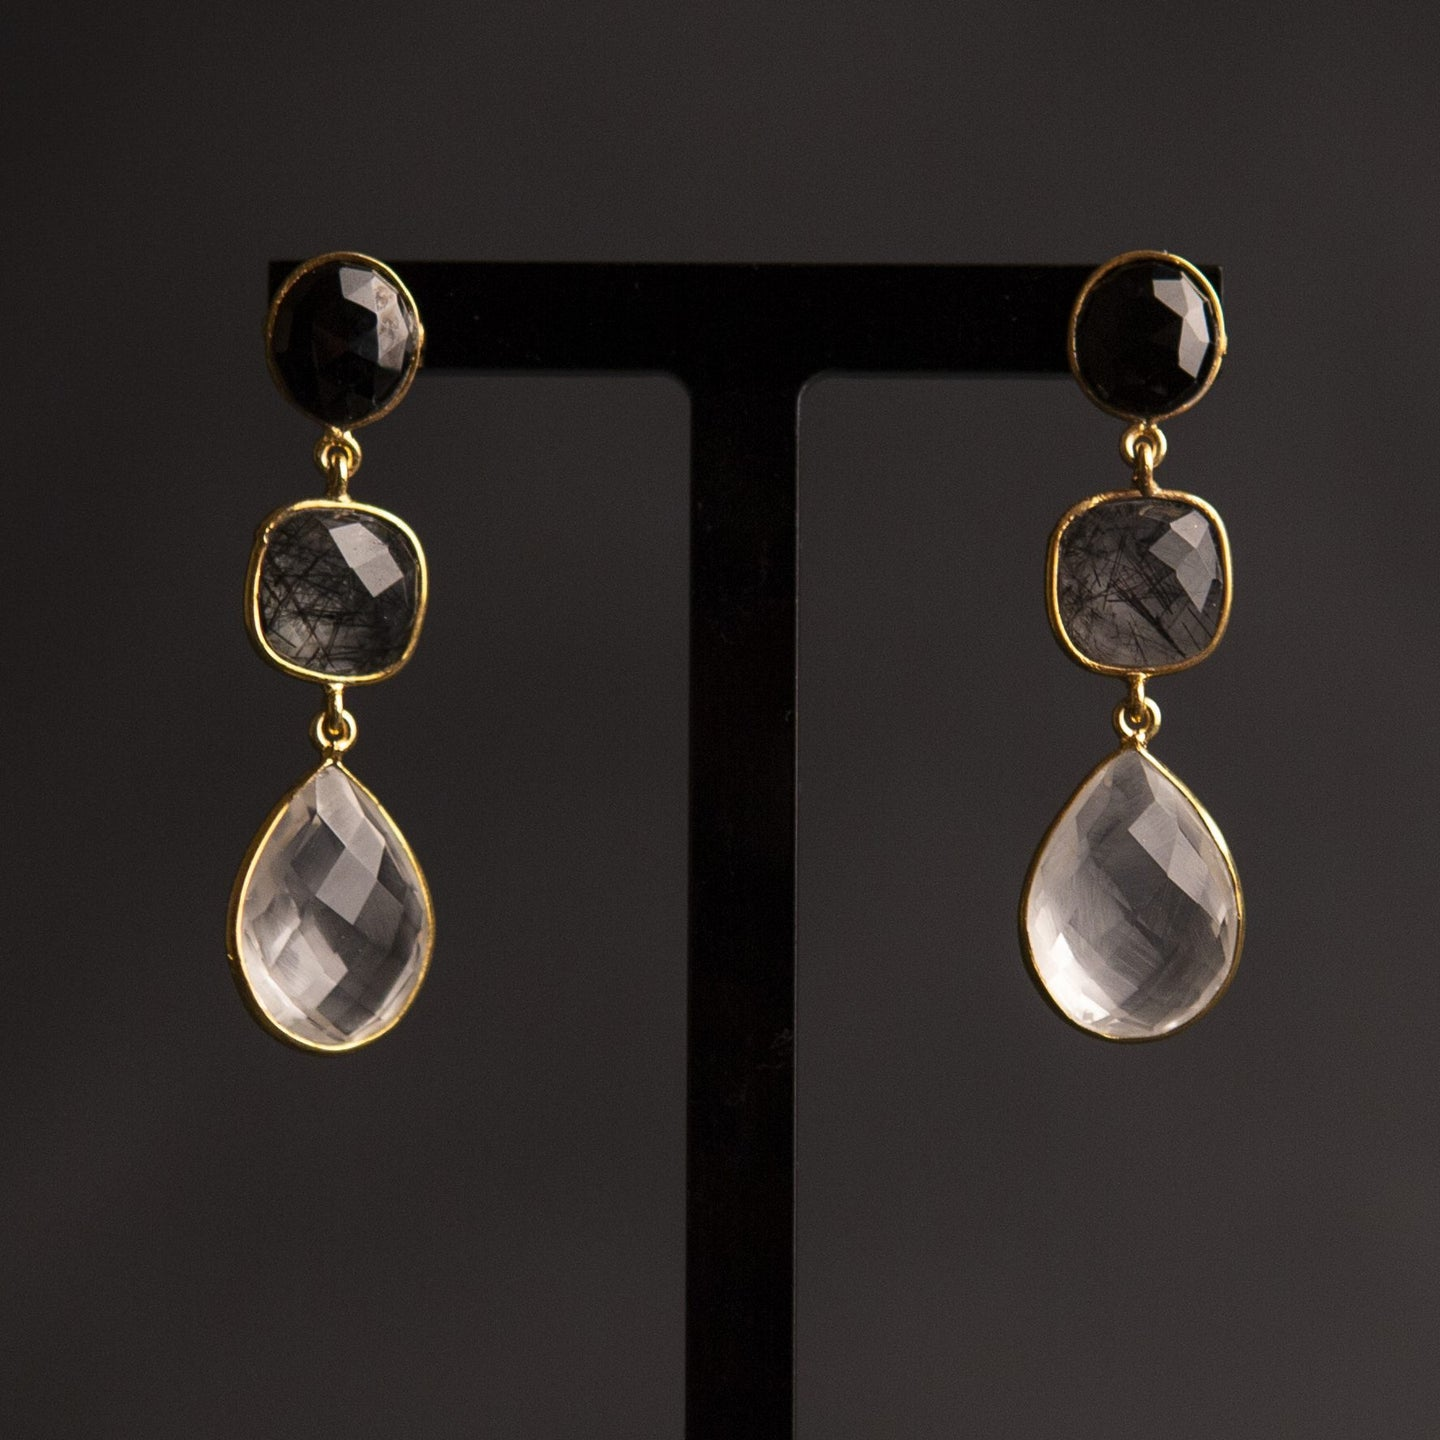 black onyx and quartz trio drop earrings, gold vermeil